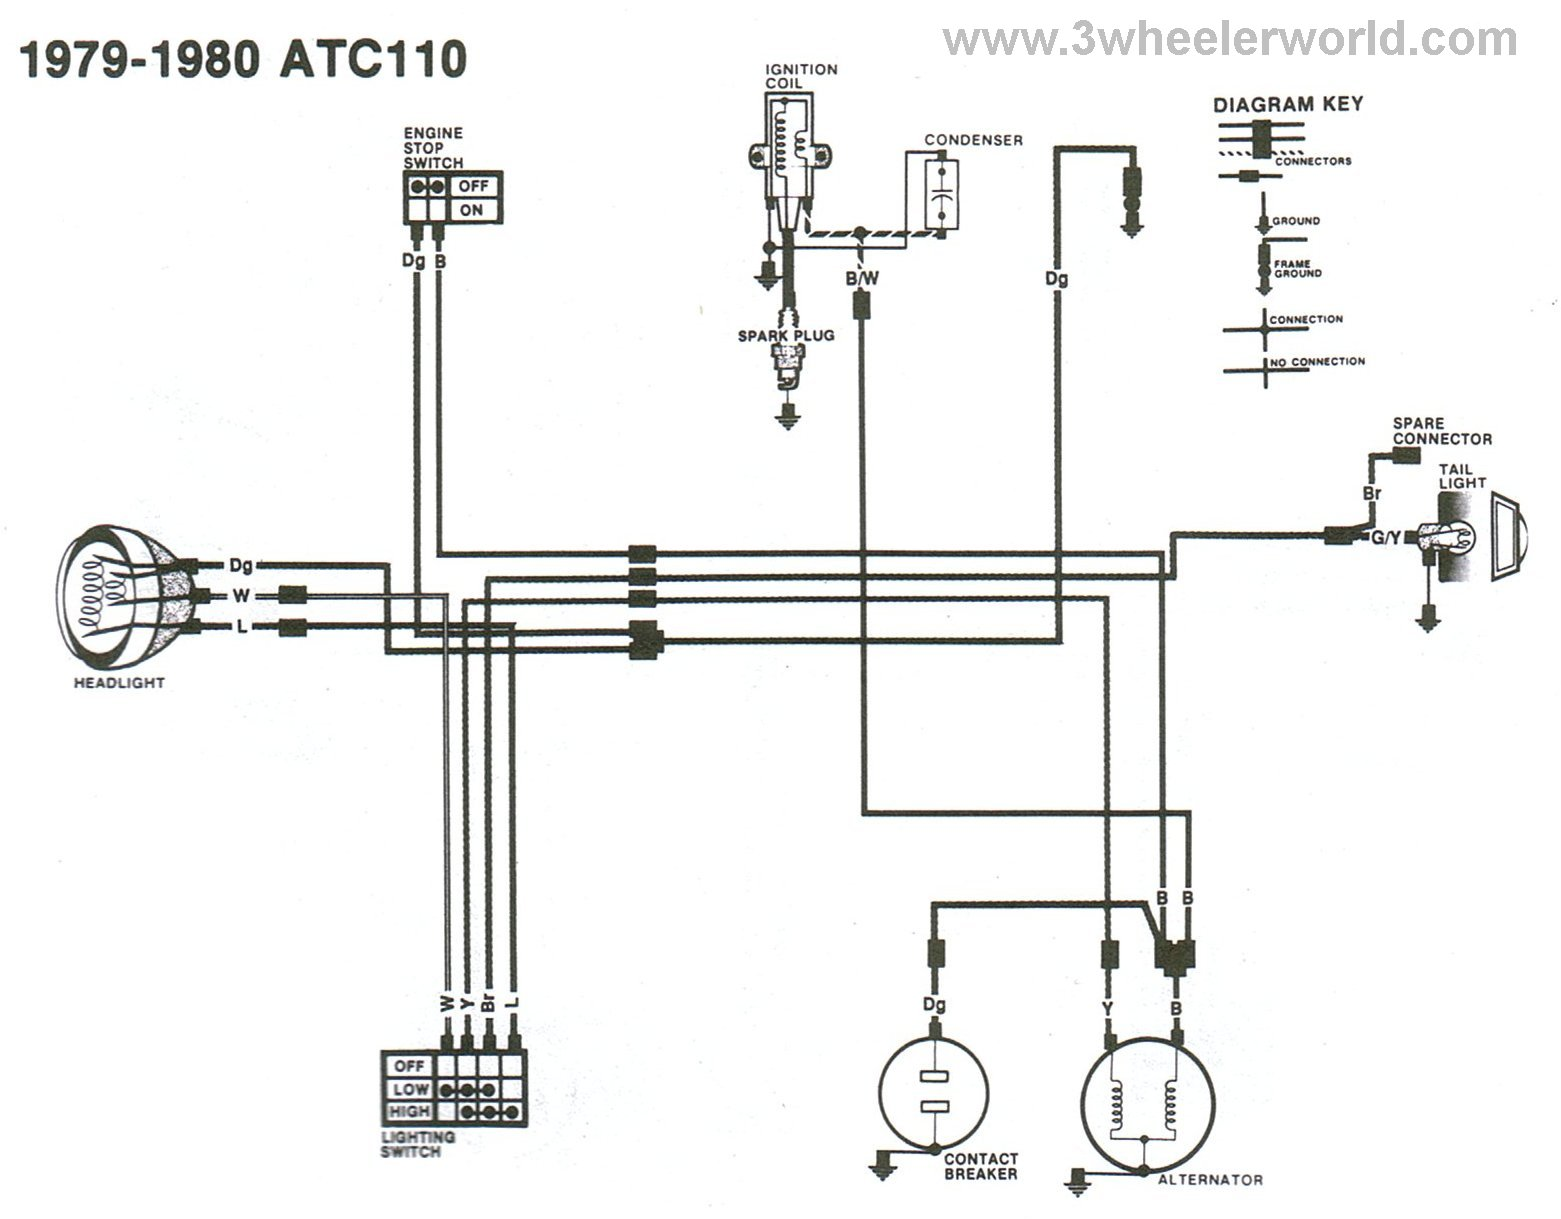 Tao 4 Wheeler 125 Wiring Schematics also Convert Scooter 12v Work Progress furthermore China atv repair manual 110 as well 50cc Chinese Scooter Wiring Diagram in addition 317237 Giovanni 110 Wiring Diagram. on tao 110 atv wiring diagram